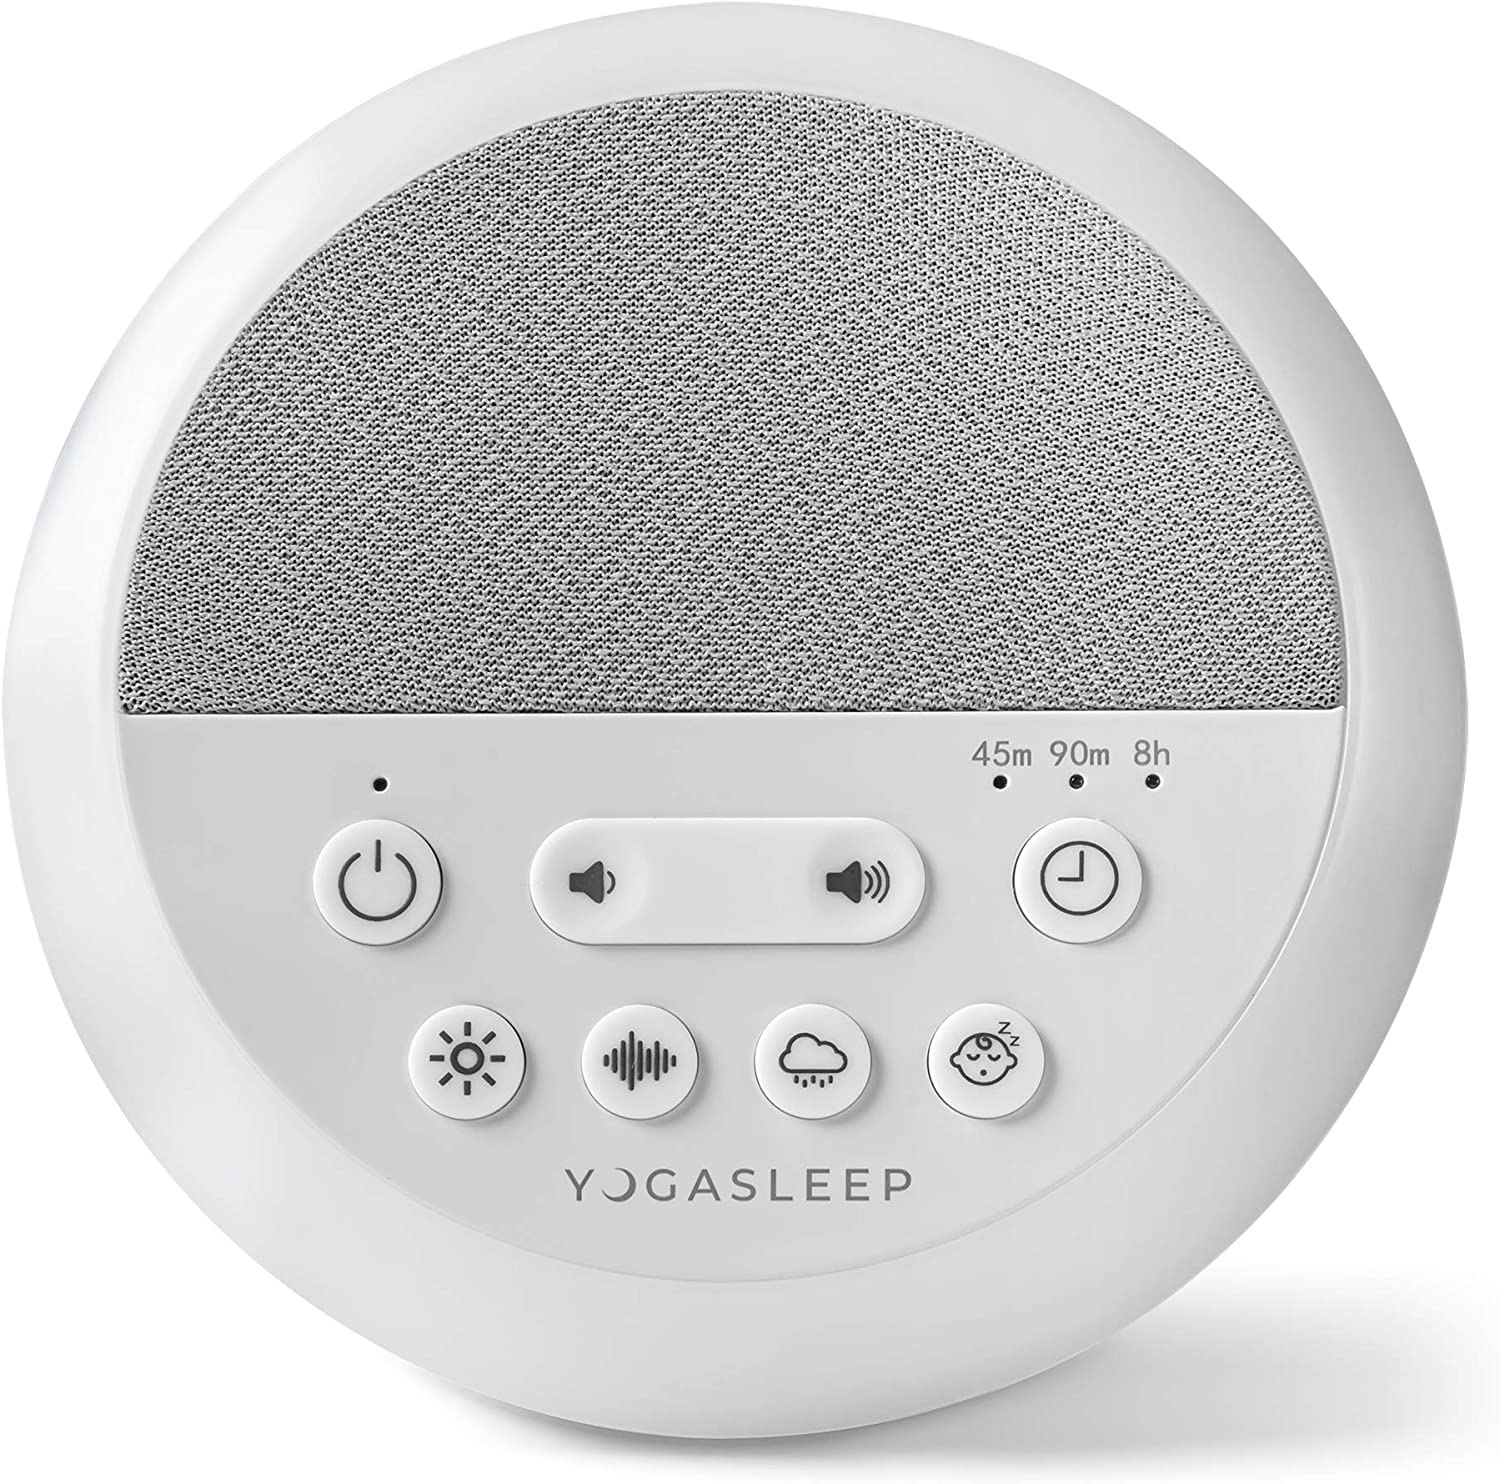 Yogasleep Nod Sound Machine and Night Light | Sound Machine for Travel, Office Privacy, Sleep Therapy | for Adults & Baby | 101 Night Trial